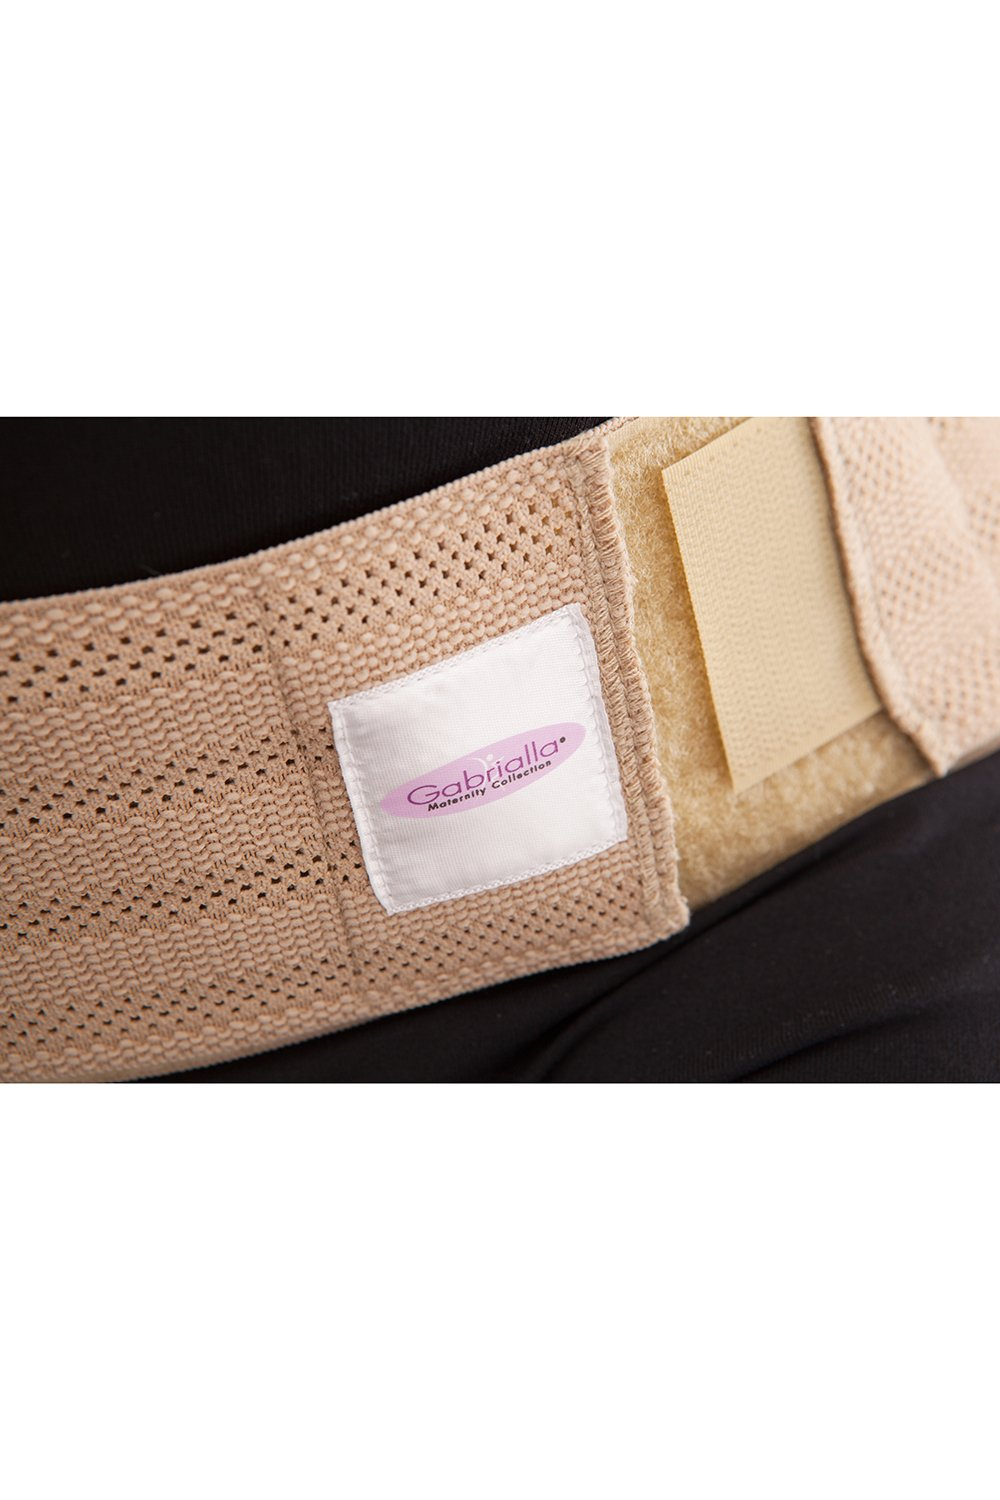 Maternity Belt - Light Support 3 inches - Gabrialla